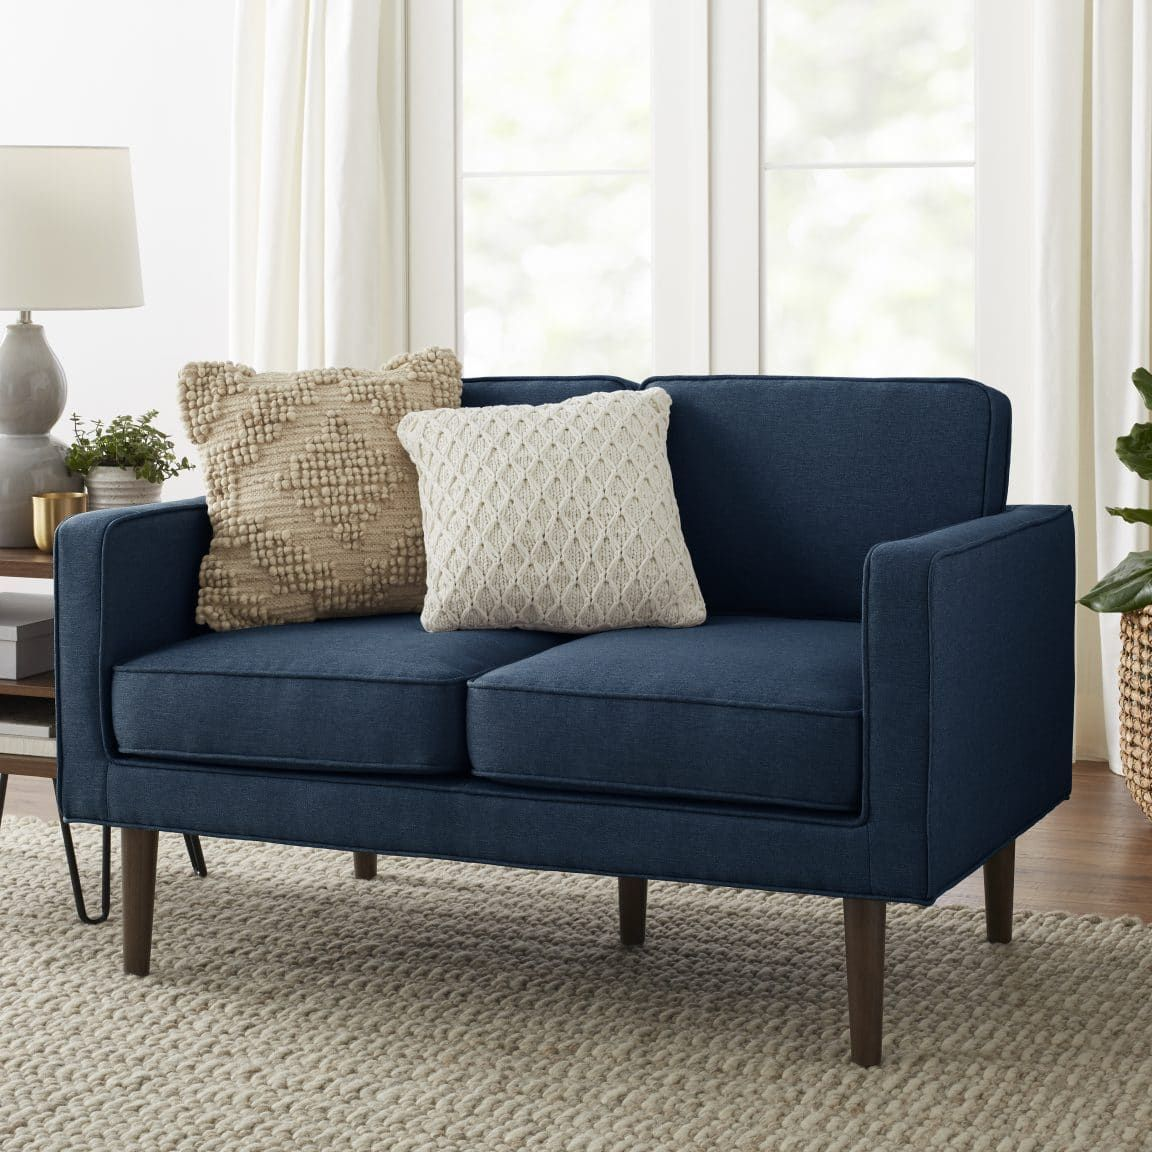 To Think That There Are Over 15 Different Types Of Couches And Sofas To Pick From Is Something I Would Have Nev Love Seat Types Of Couches